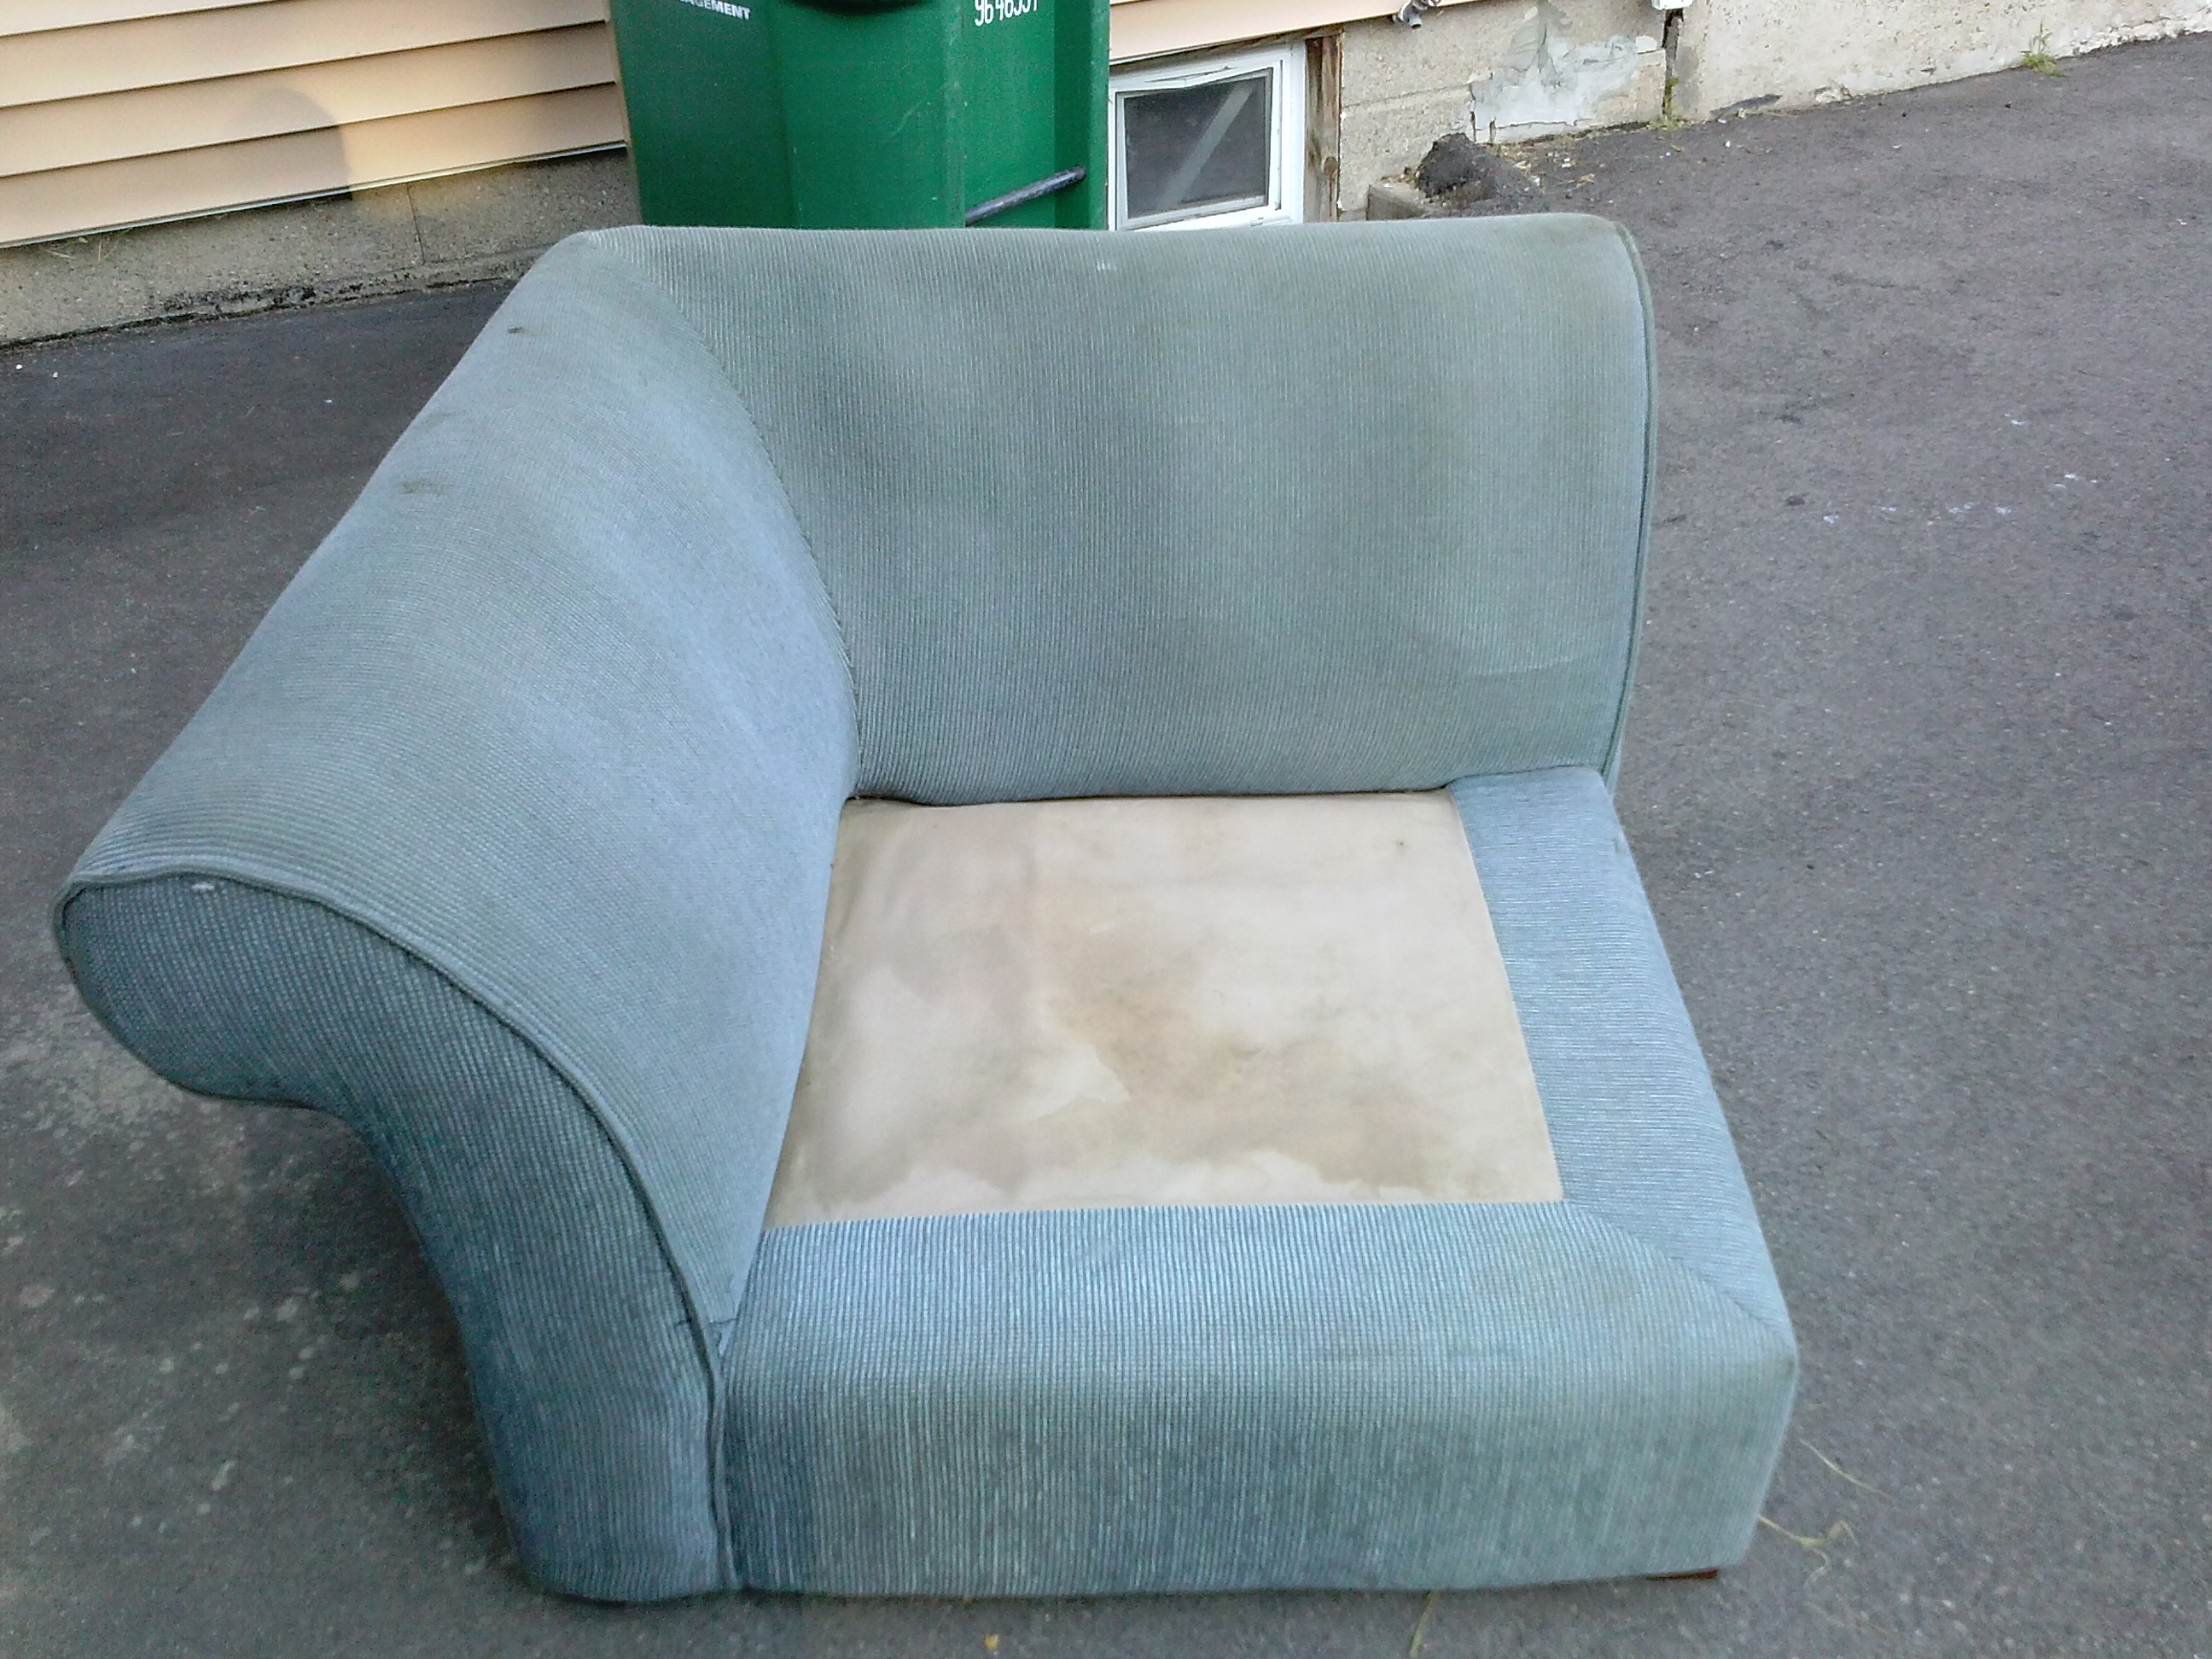 How To Get Free Furniture For Low Income Families Free Furniture And Discounted Furniture For